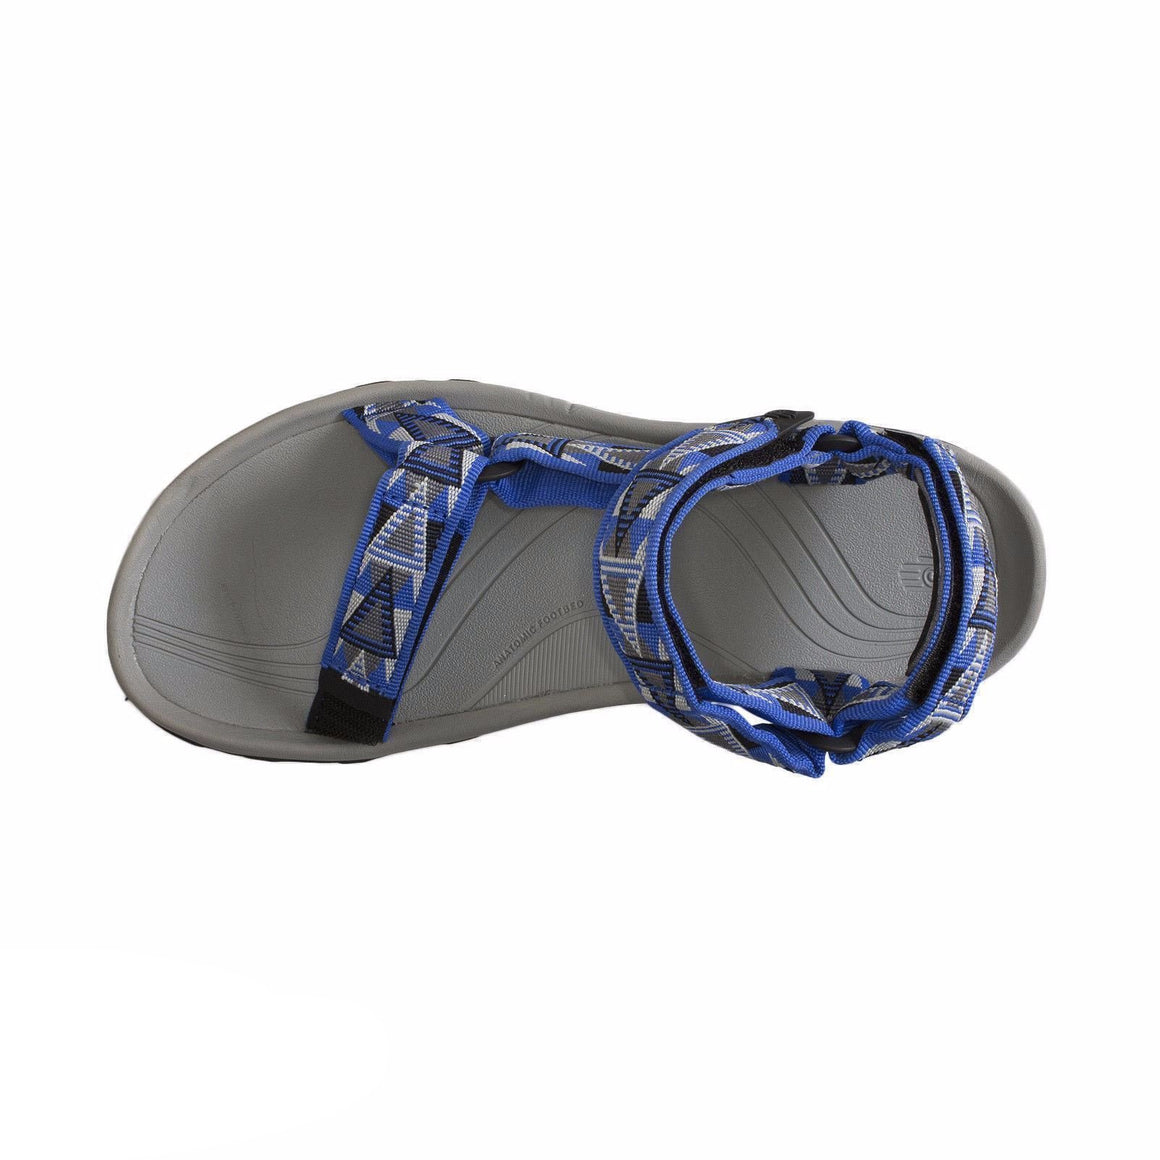 Teva Hurricane XLT Mosaic Blue Sandals